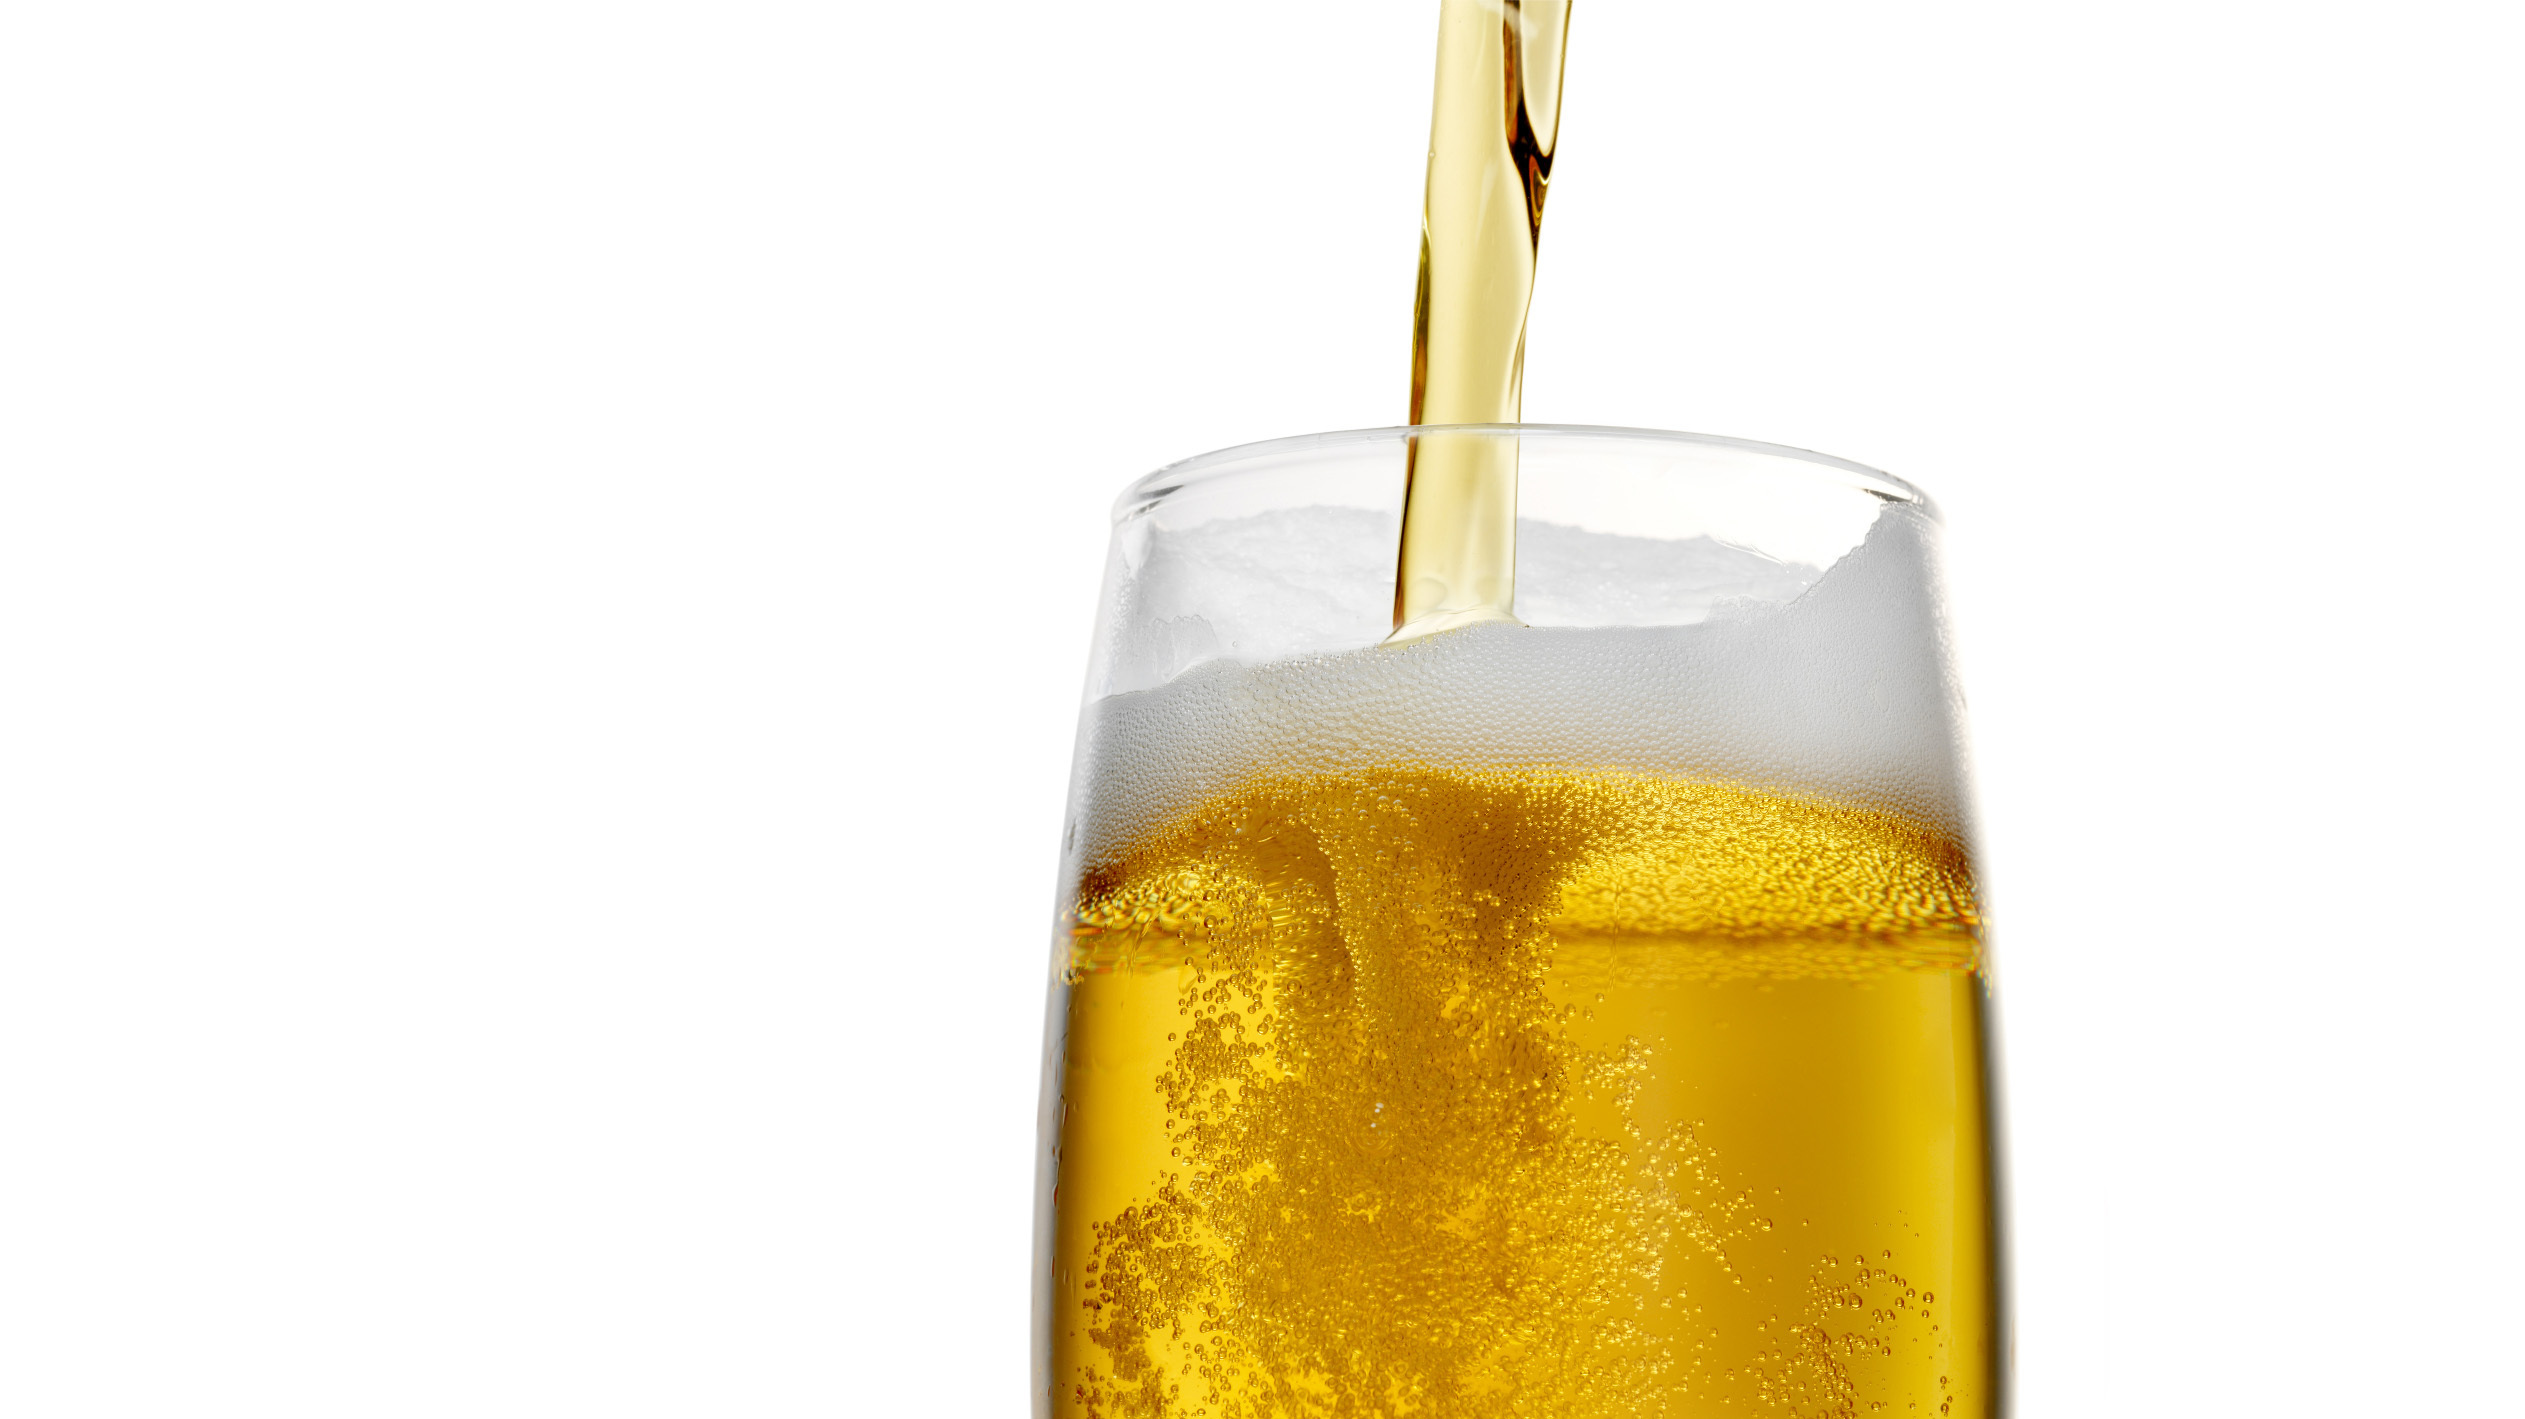 Arsenic In Beer May Come From Widely Used Filtering Process